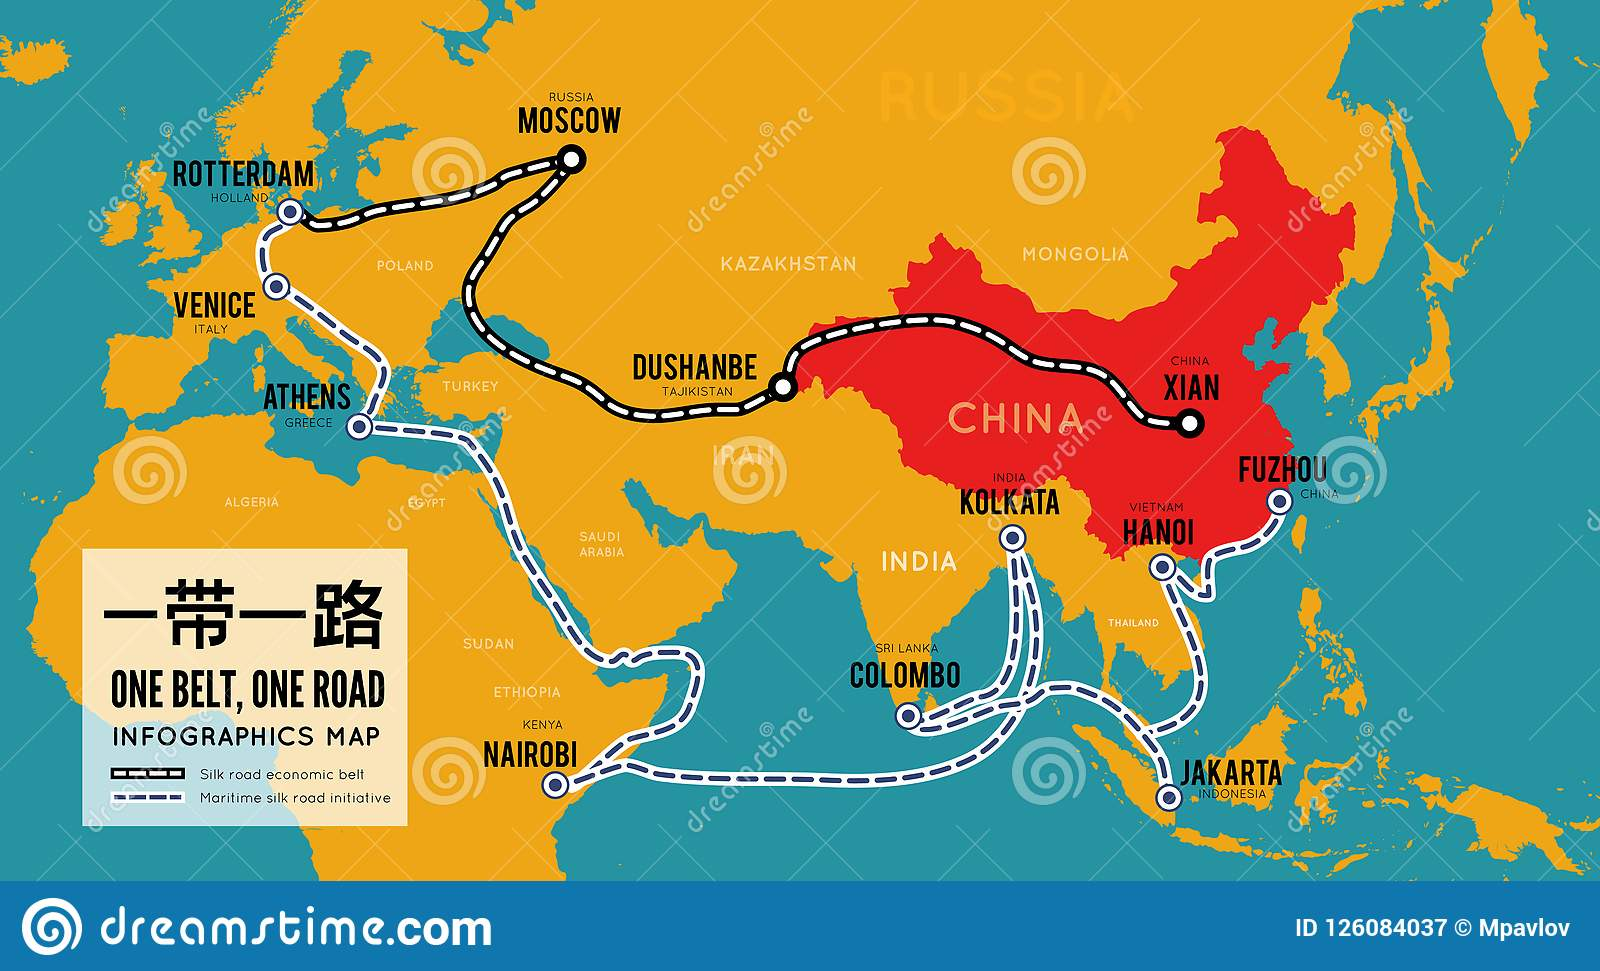 One Belt One Road. New Chinese Trade Silk Road. Vector Map ... China Road Map In Chinese on china travel map, china flag, china province map, china map outline, days of the week in chinese, china map in english, kayla in chinese, china map with cities, china map in black, china map love, jessica in chinese, 1 to 10 in chinese, china map water, one in chinese, chinese language in chinese, china tourist map, china map in tibet, jennifer in chinese, chinese food in chinese,